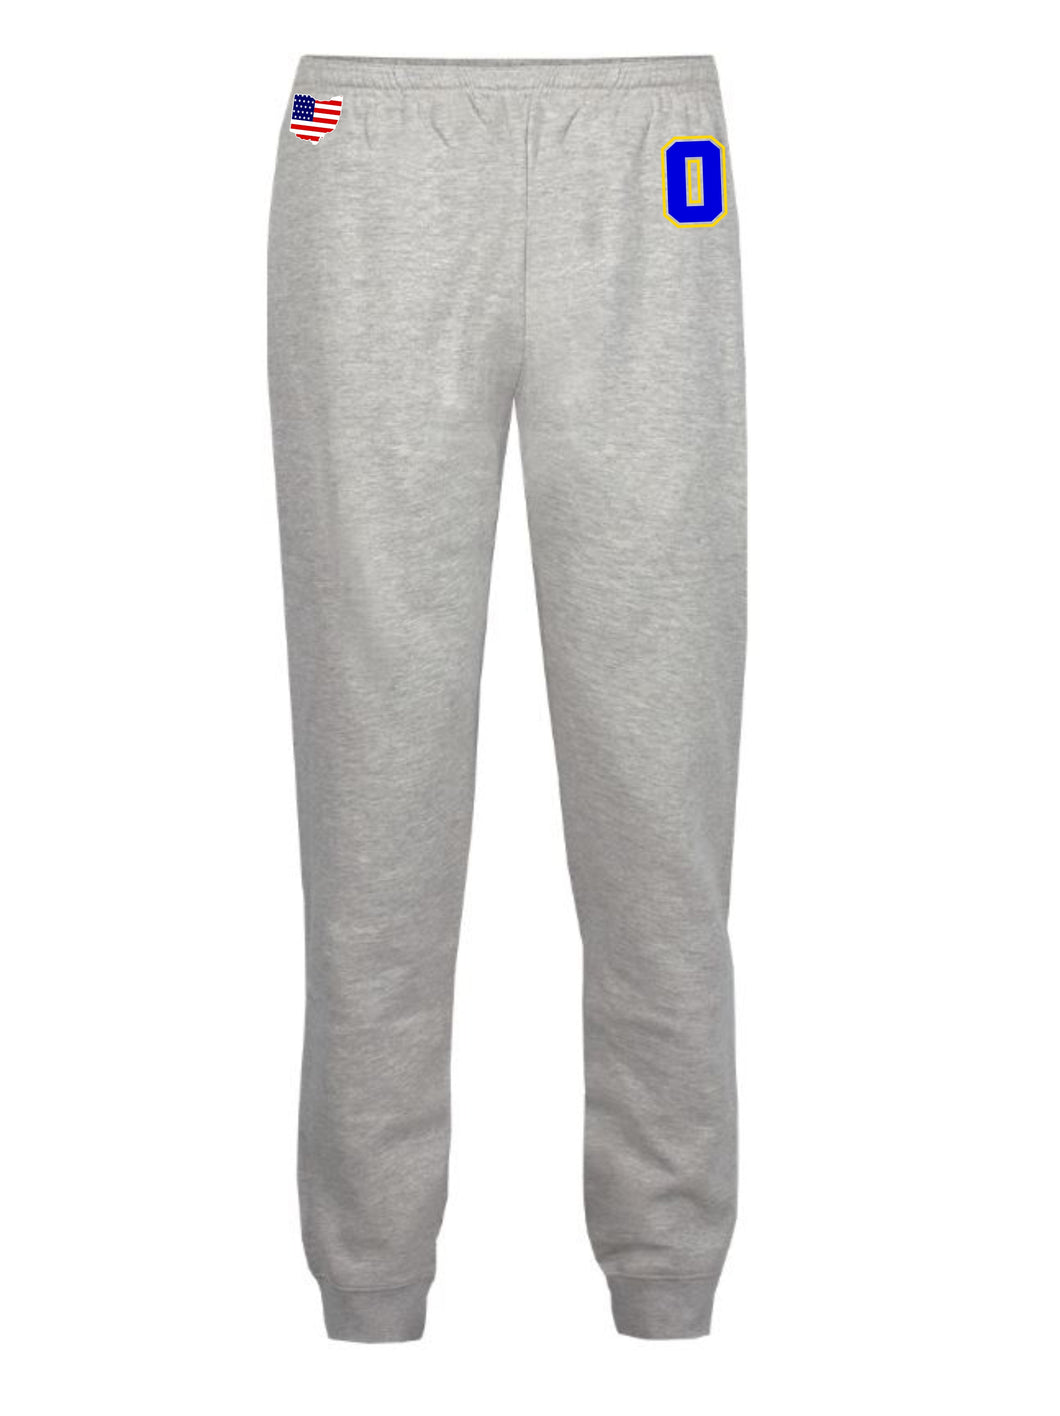 Block O Jogger Sweatpants Youth